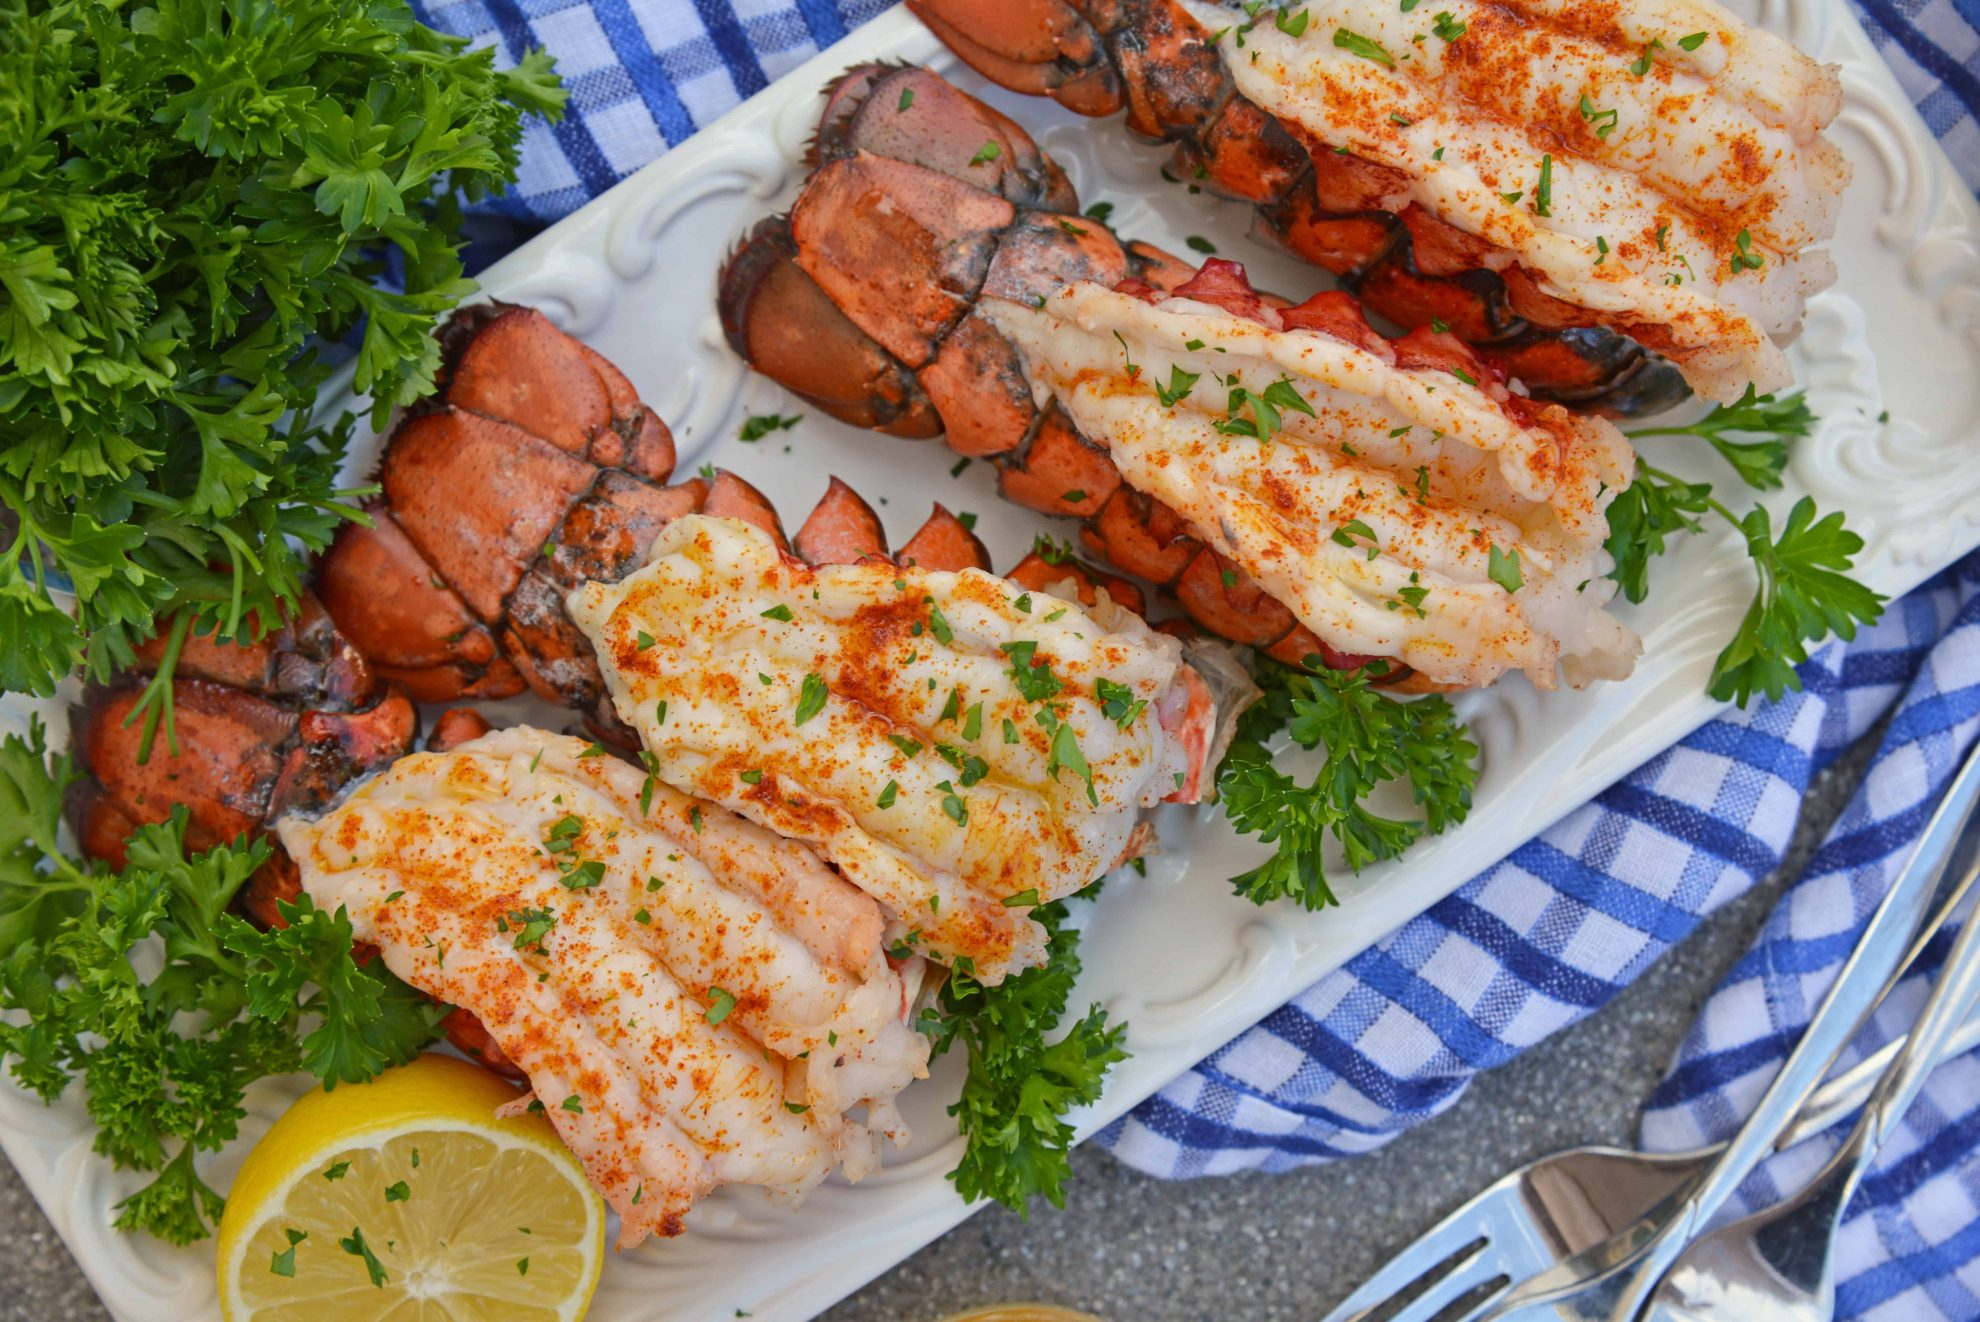 Broiled Lobster Tails with Lemon Butter brings the feel of a fancy restaurant right to the comfort of your own home and is ready in just minutes! #howtocooklobstertails #broiledlobstertails www.savoryexperiments.com